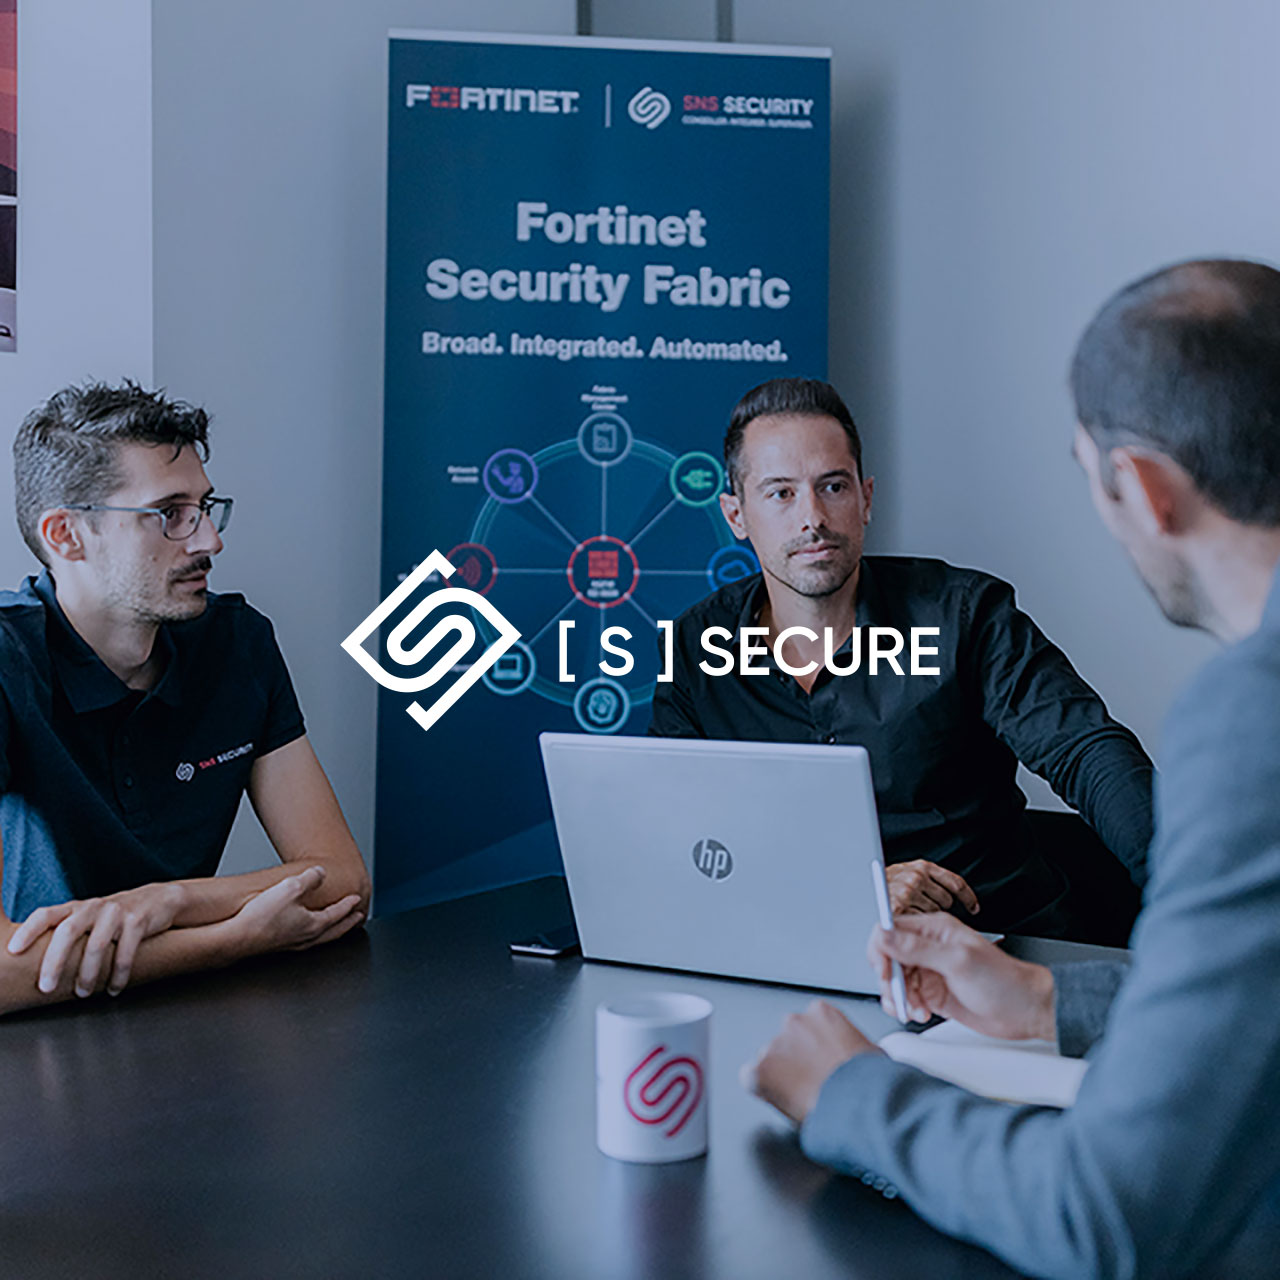 s secure accompagnement maintien condition operationnelle fortinet fortigate